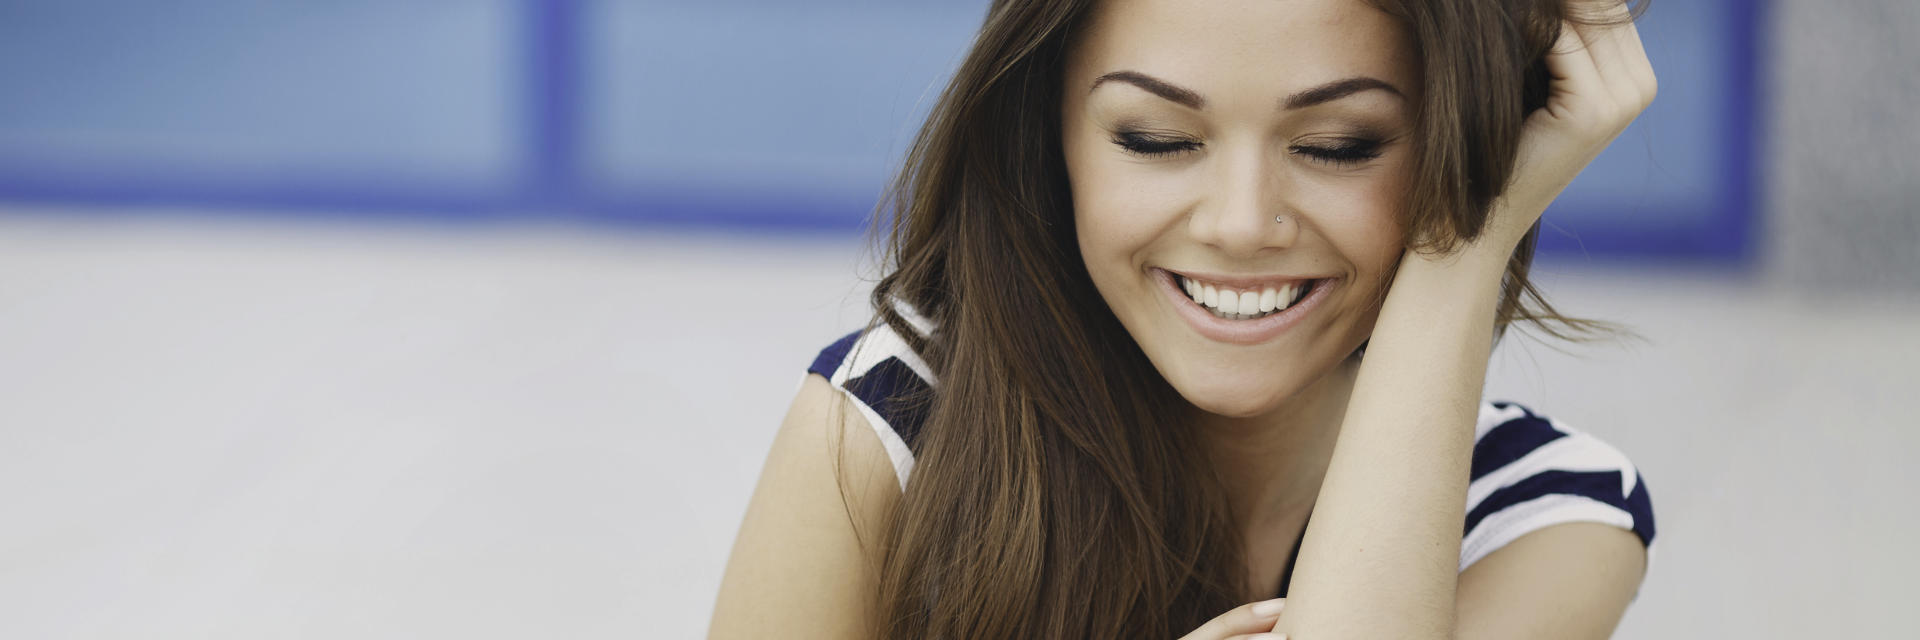 Happy Young Woman With Perfect Skin After Cosmetic Dermatology Treatment